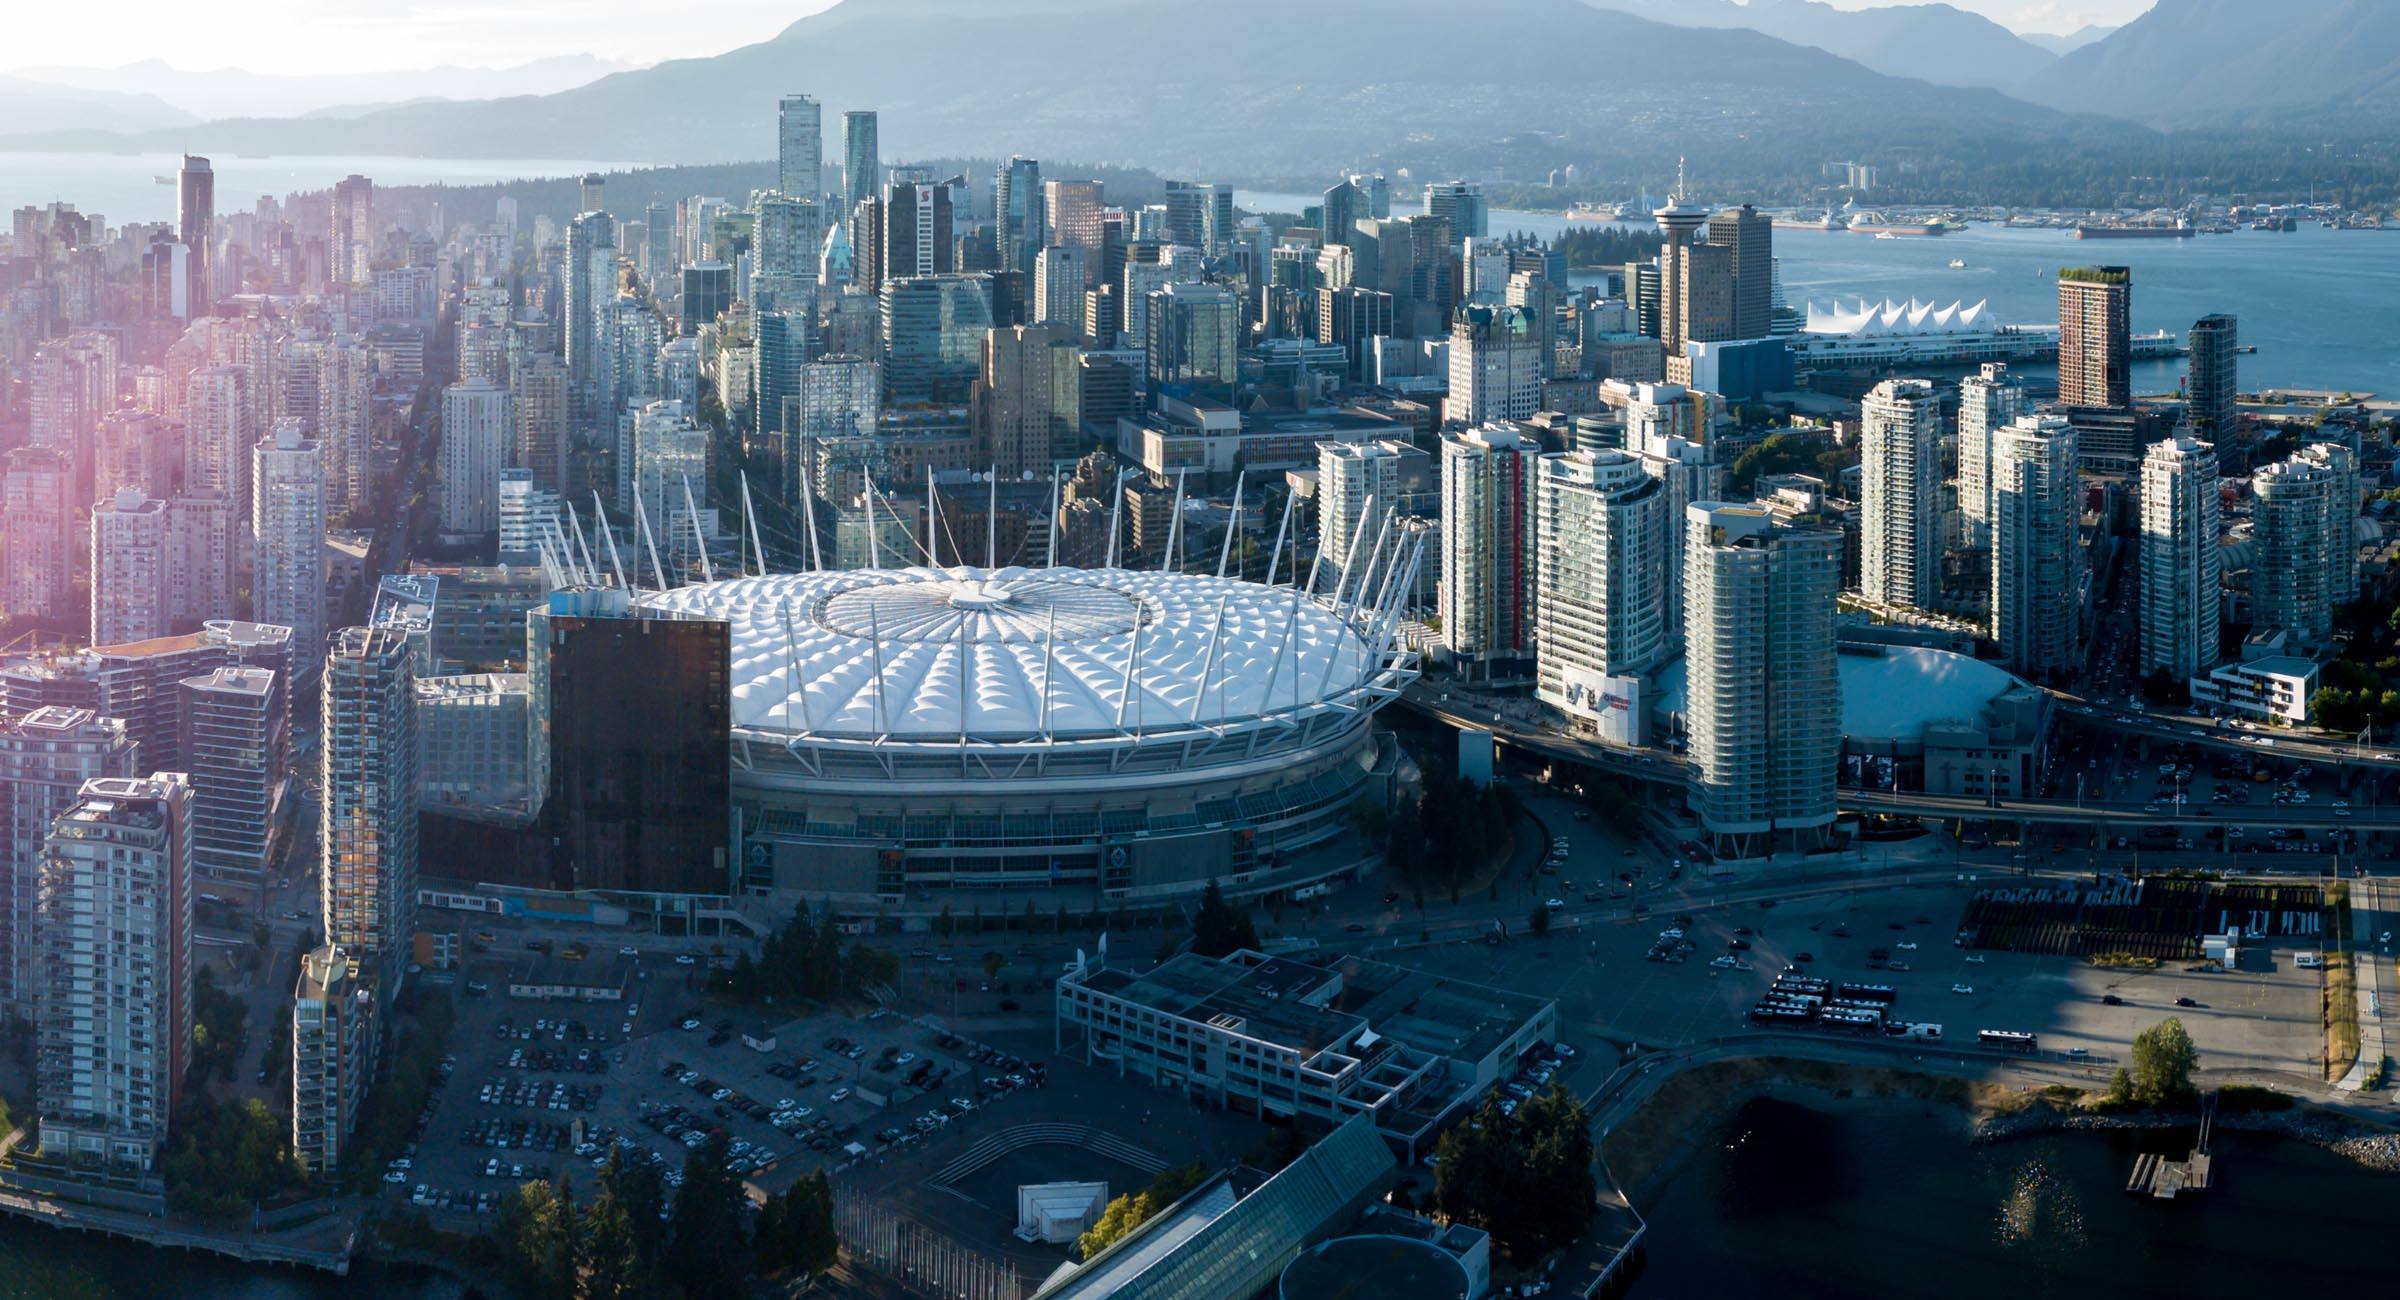 images_0000_Vancouver_3